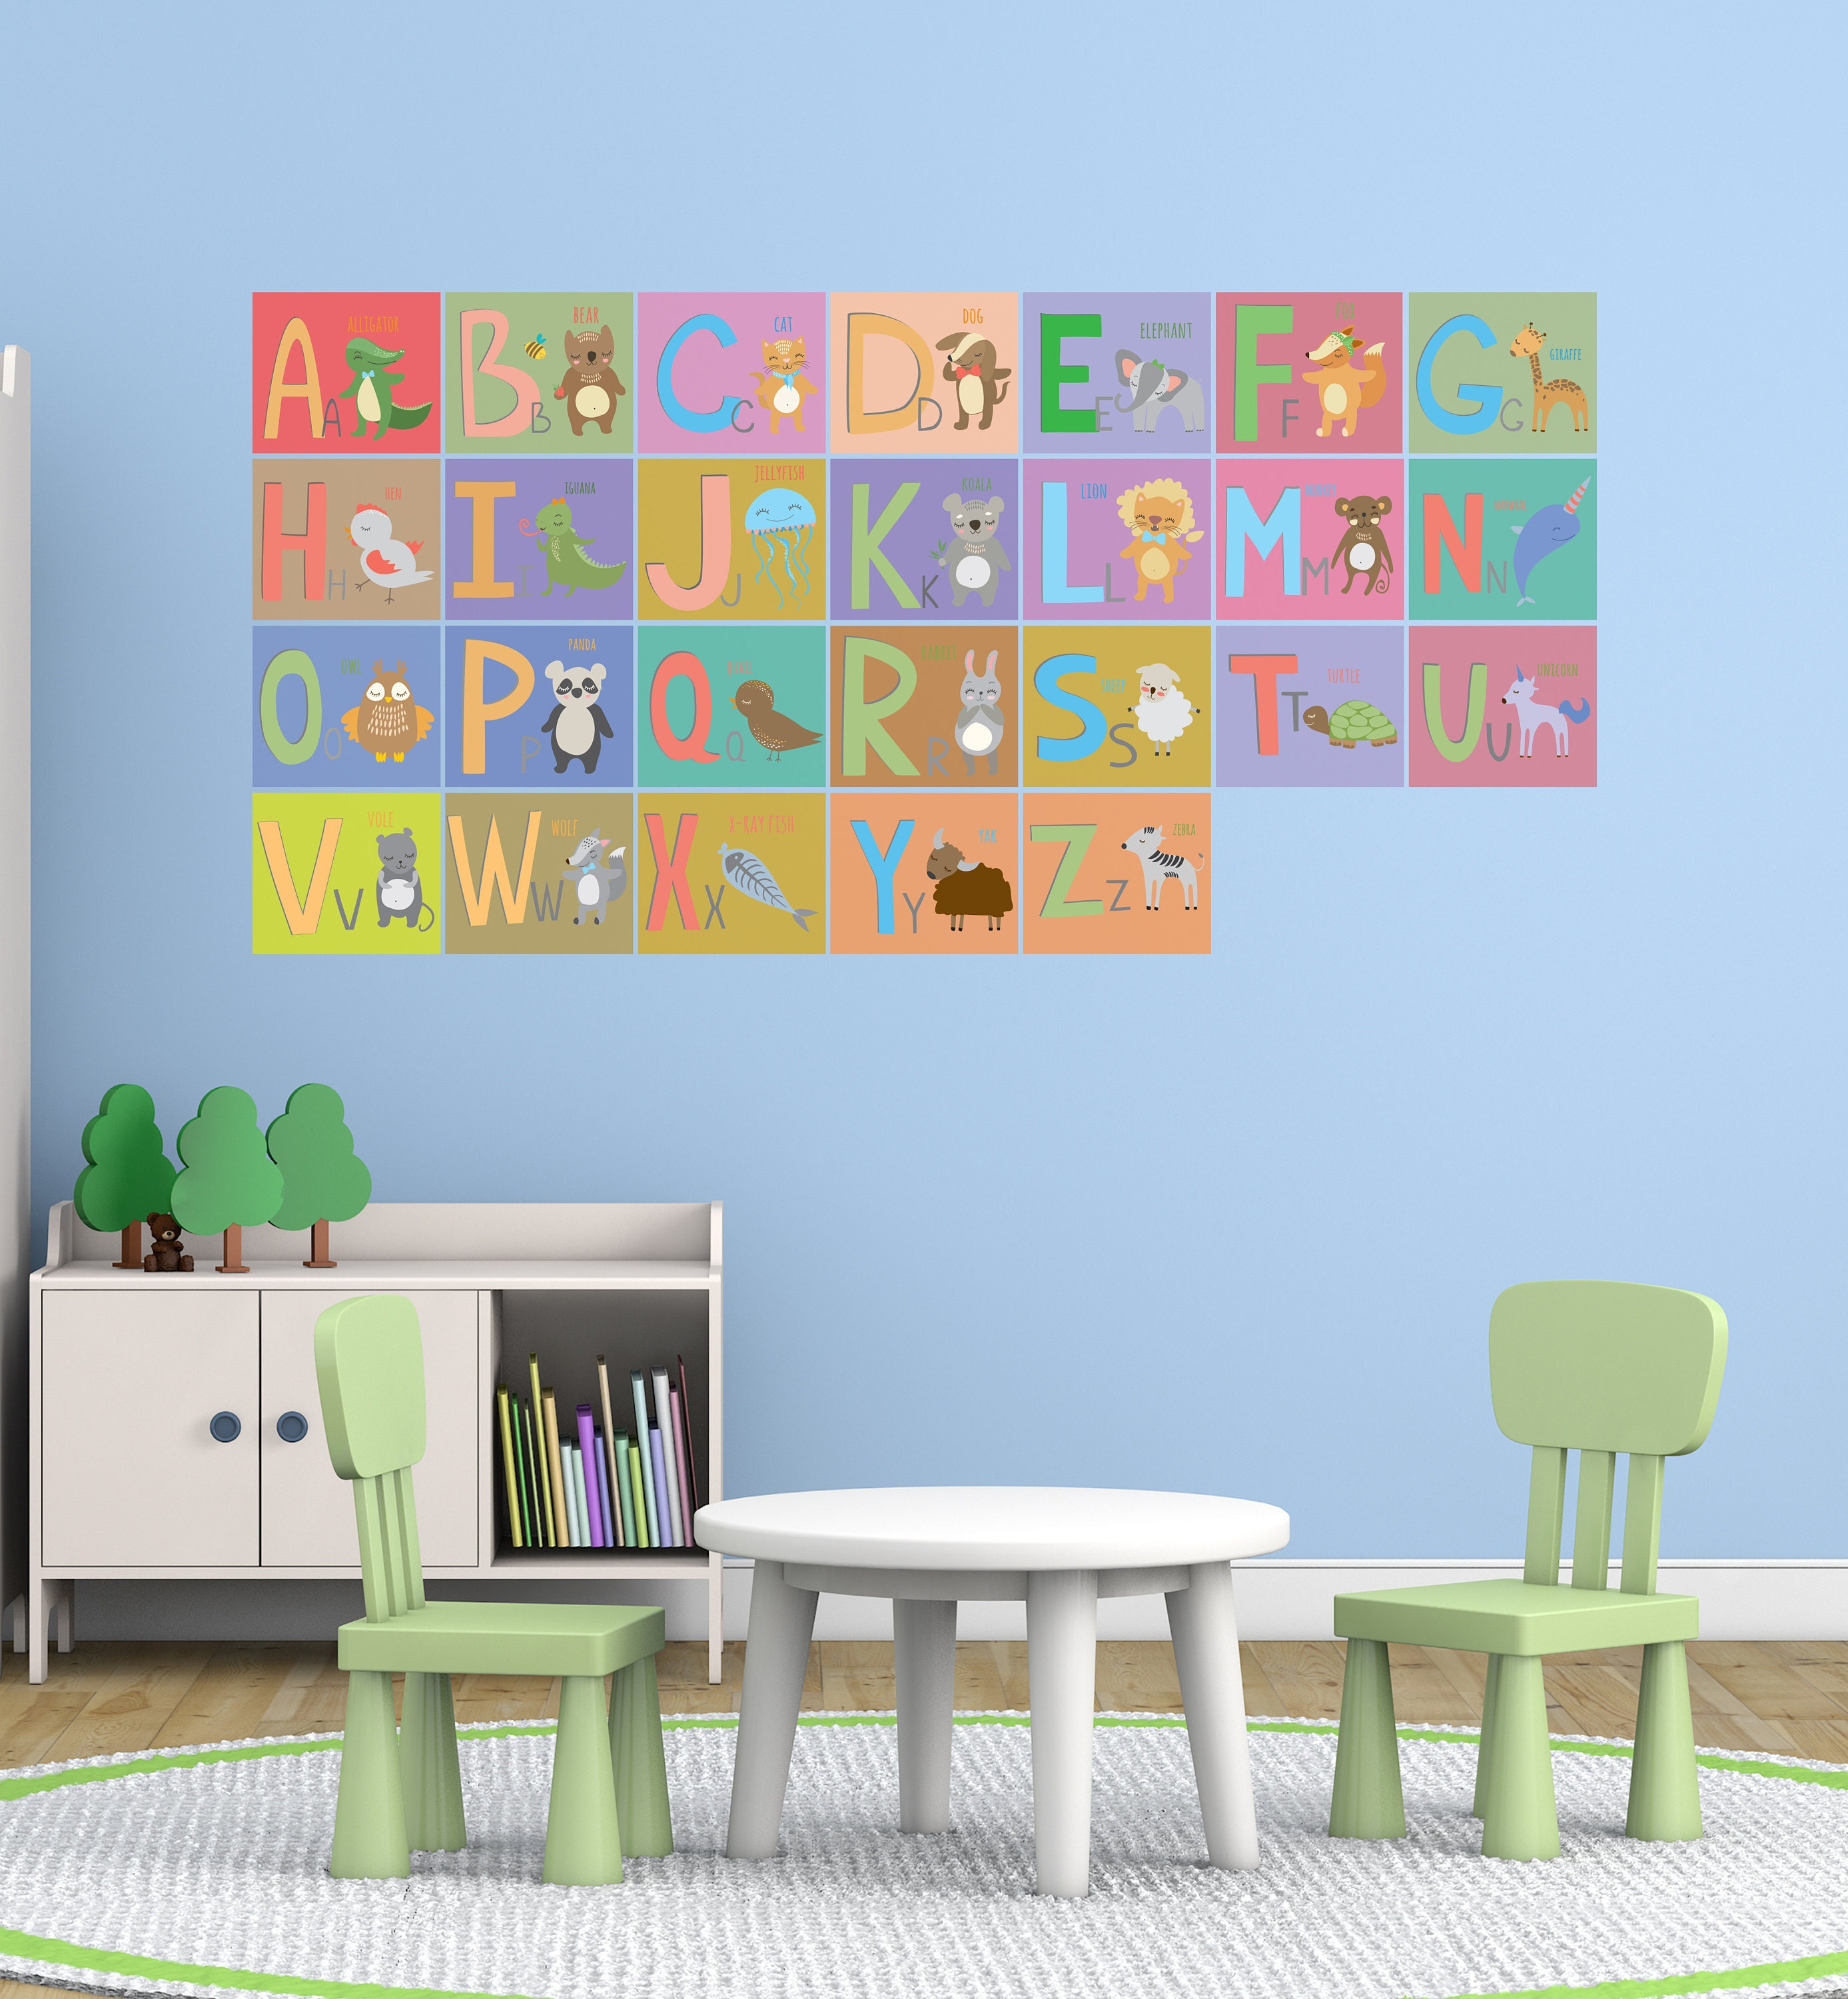 Home office colorful girl Feng Shui 50 Etsy Alphabet Wall Decal Colorful Abc Vinyl Art Az Animals Etsy